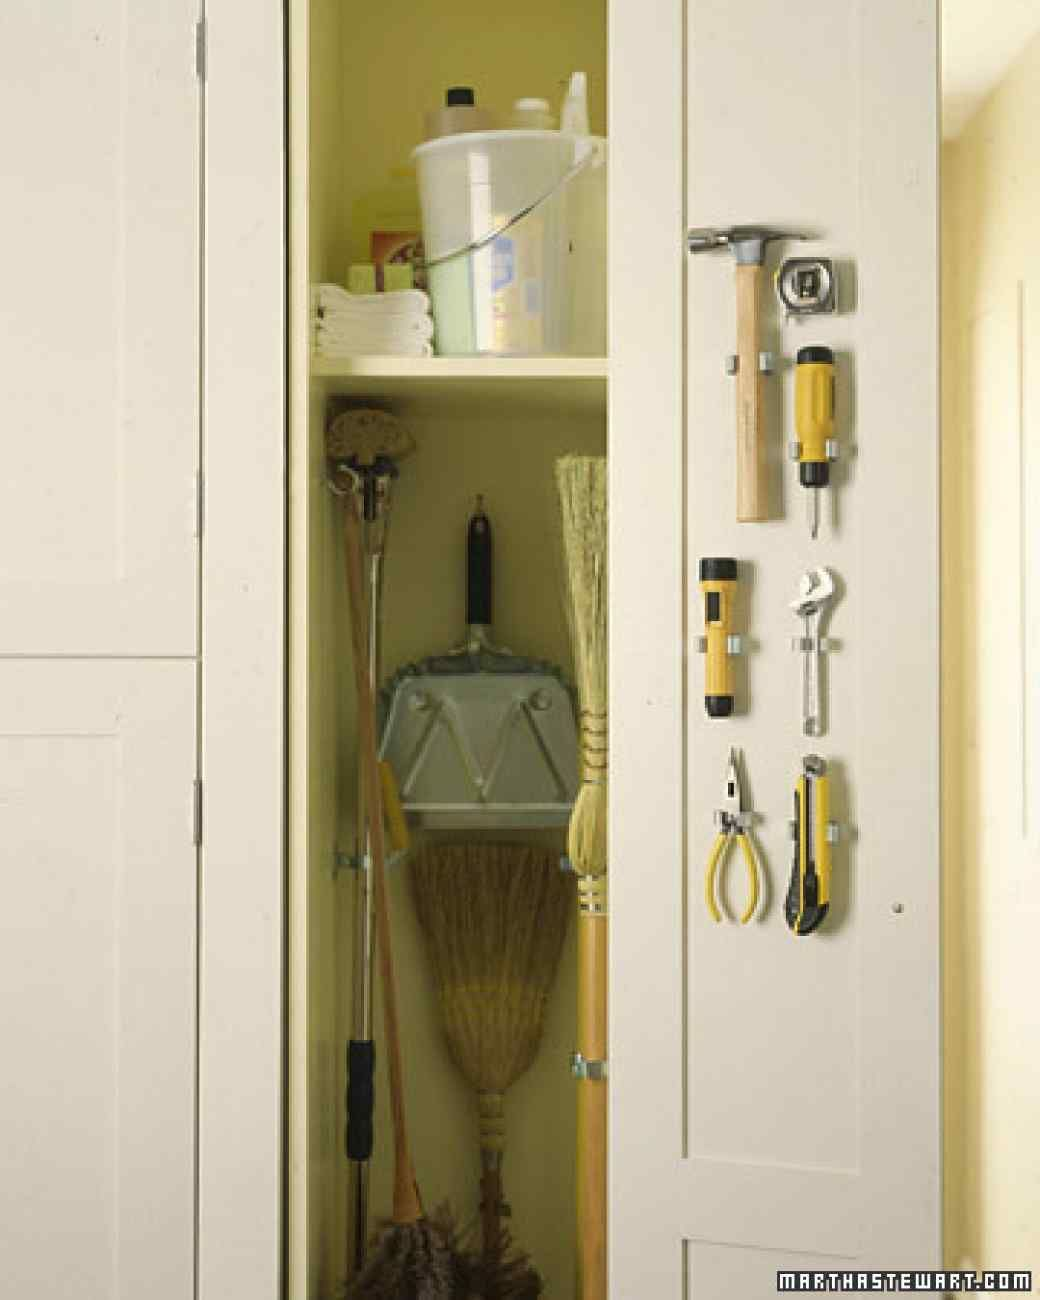 Broom closet organizer hooks and clips keep mops and brooms tidy and tools at hand store cleaning supplies in a bucket to transport them easily from room